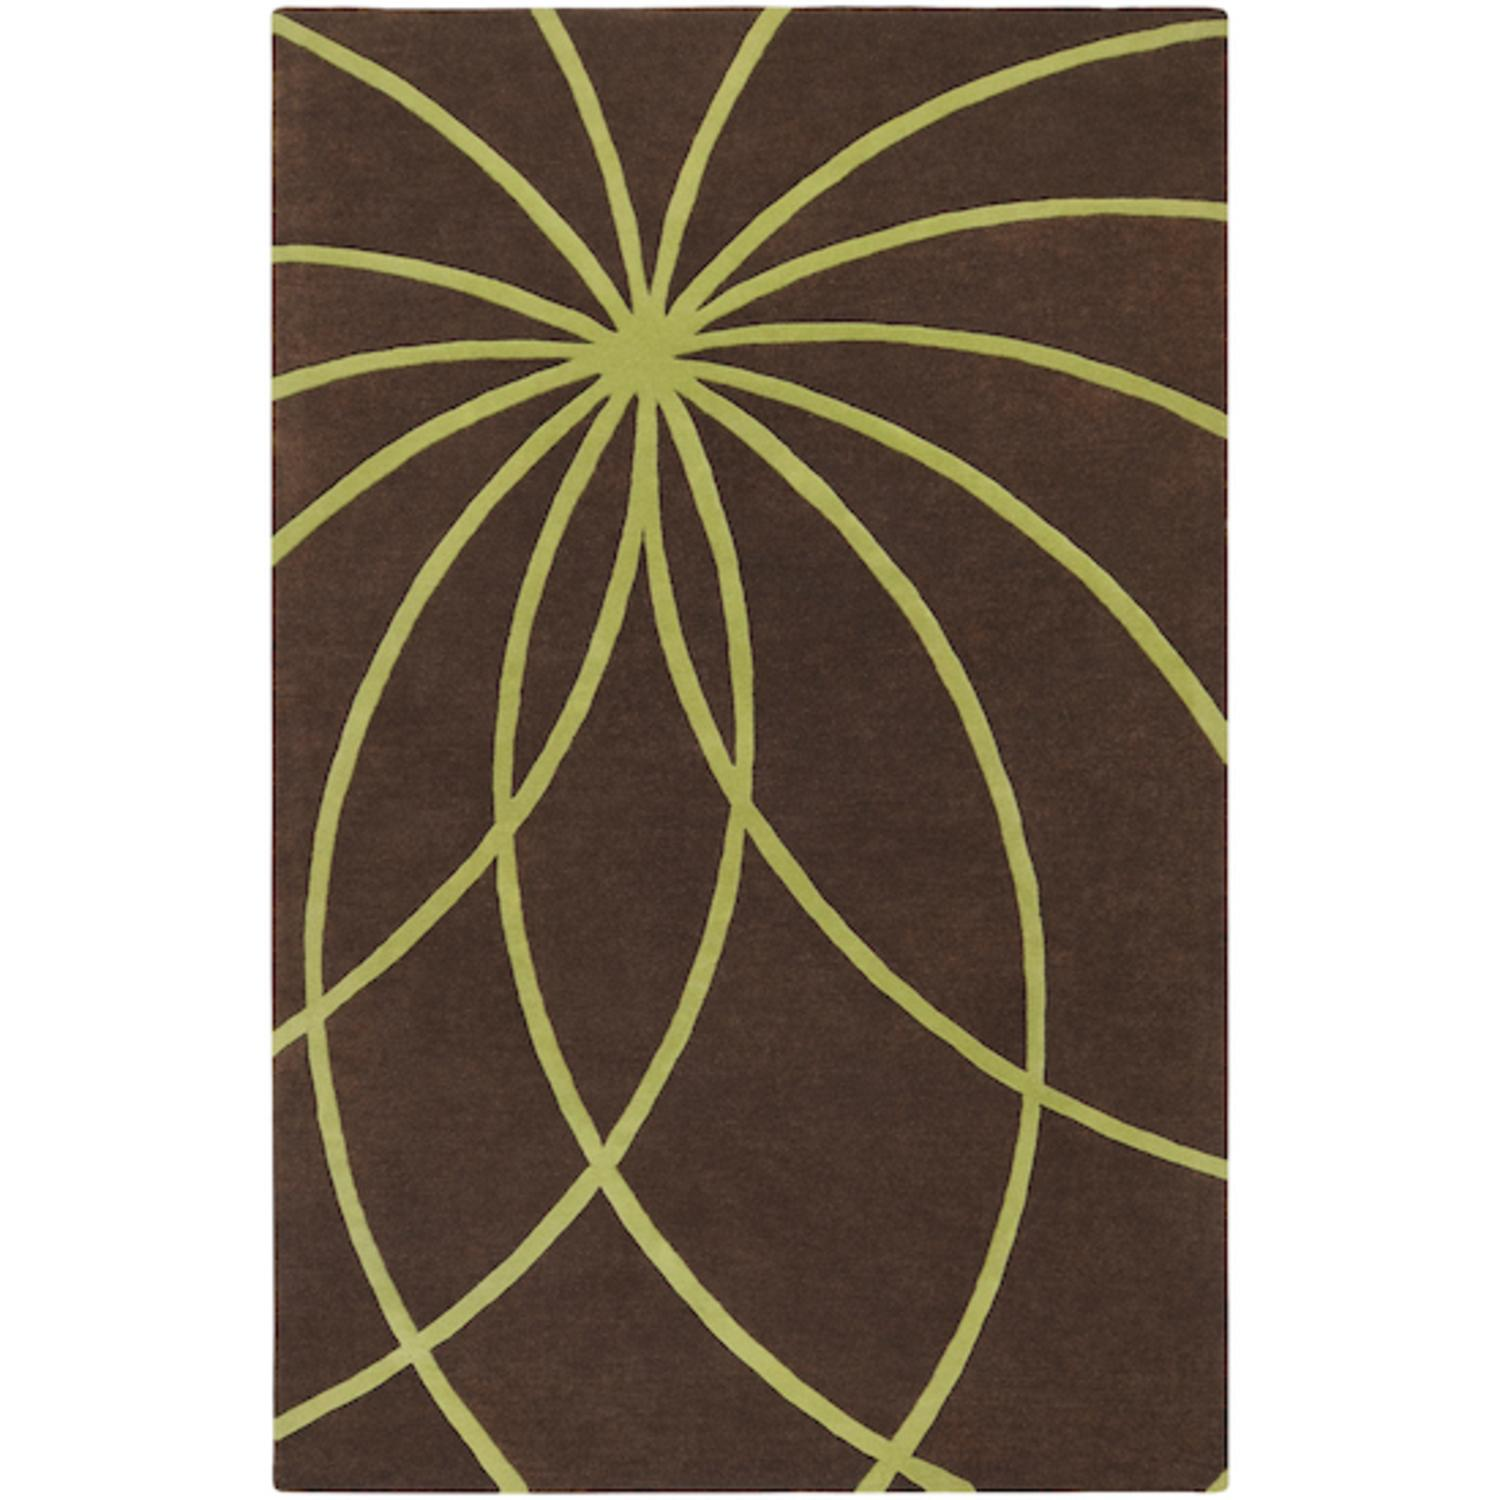 9' x 12' Plasma Elektra Contemporary Moss Green and Brown Wool Area Throw Rug